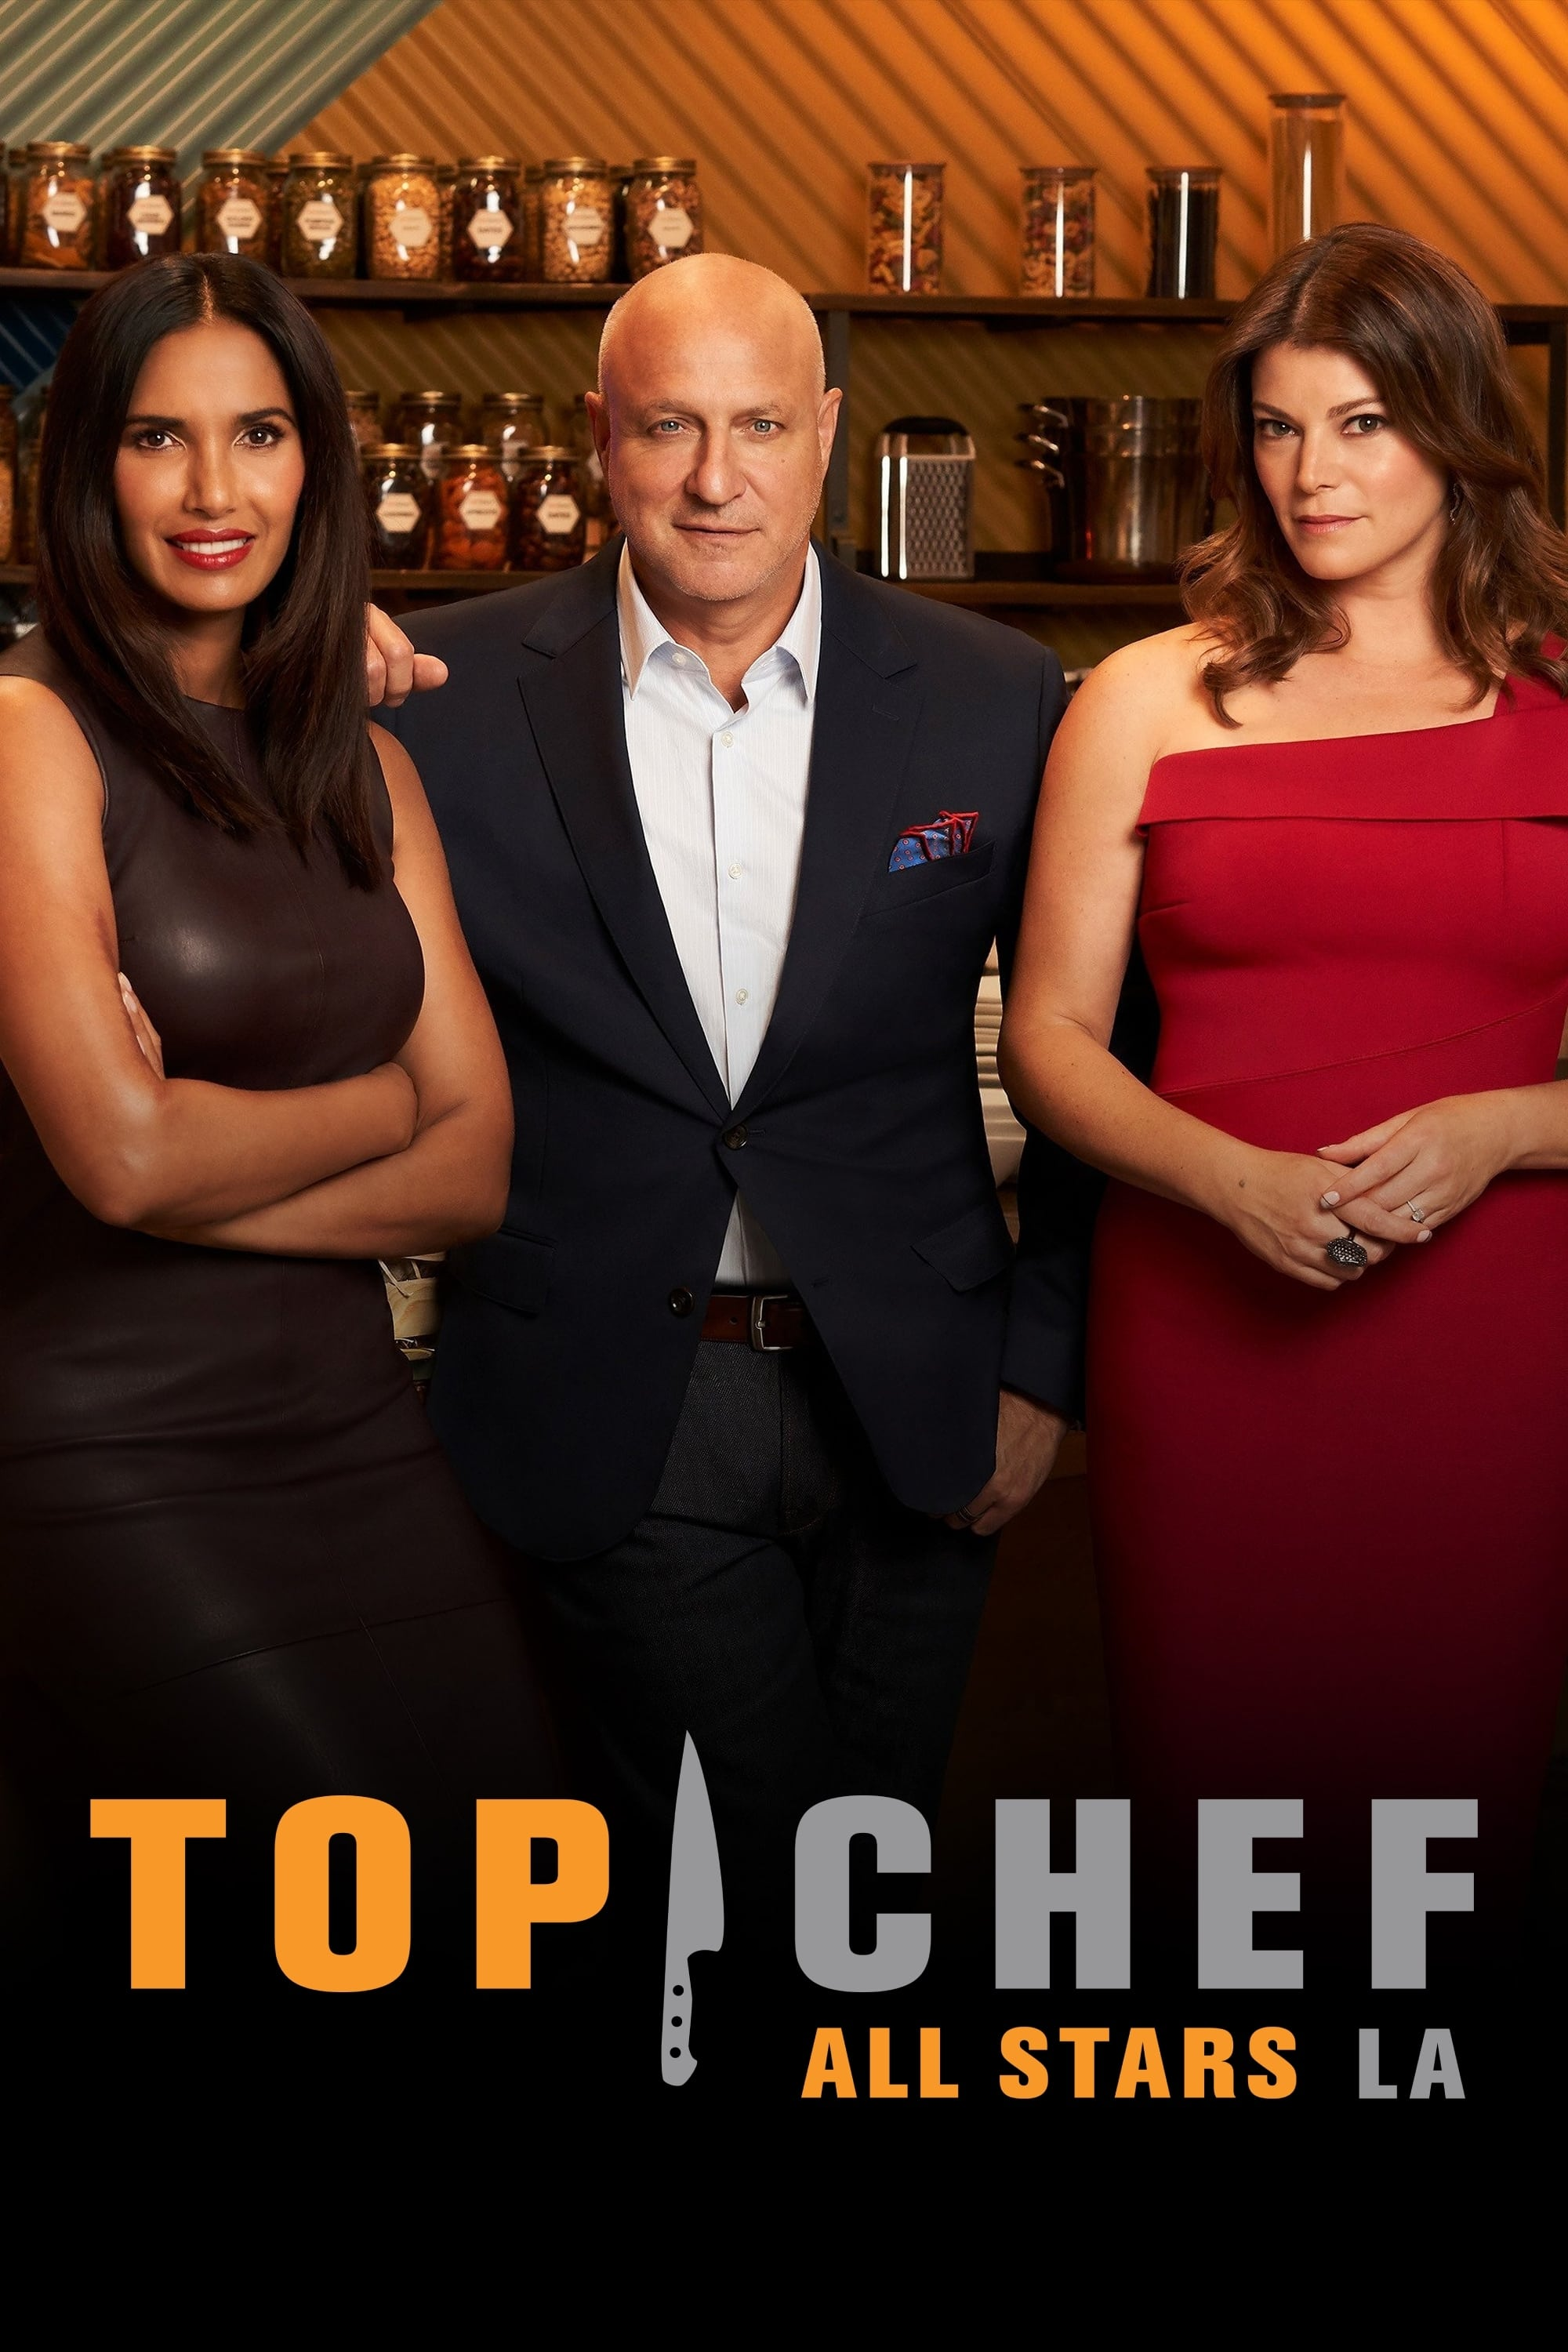 Top Chef Season 17